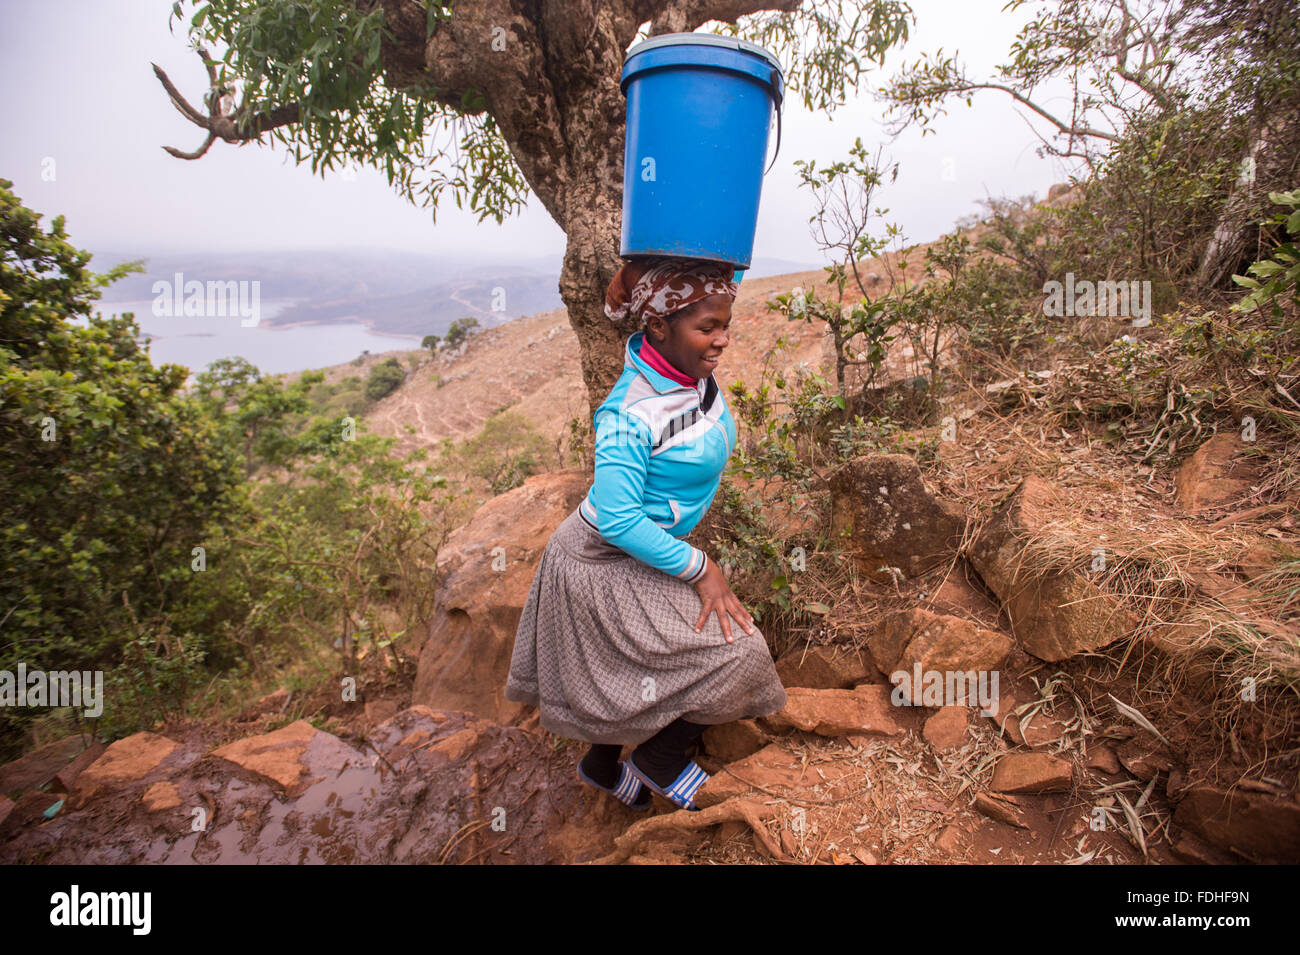 Woman carrying a bucket on her head over rocky terrain in the Hhohho region of Swaziland, Africa. - Stock Image